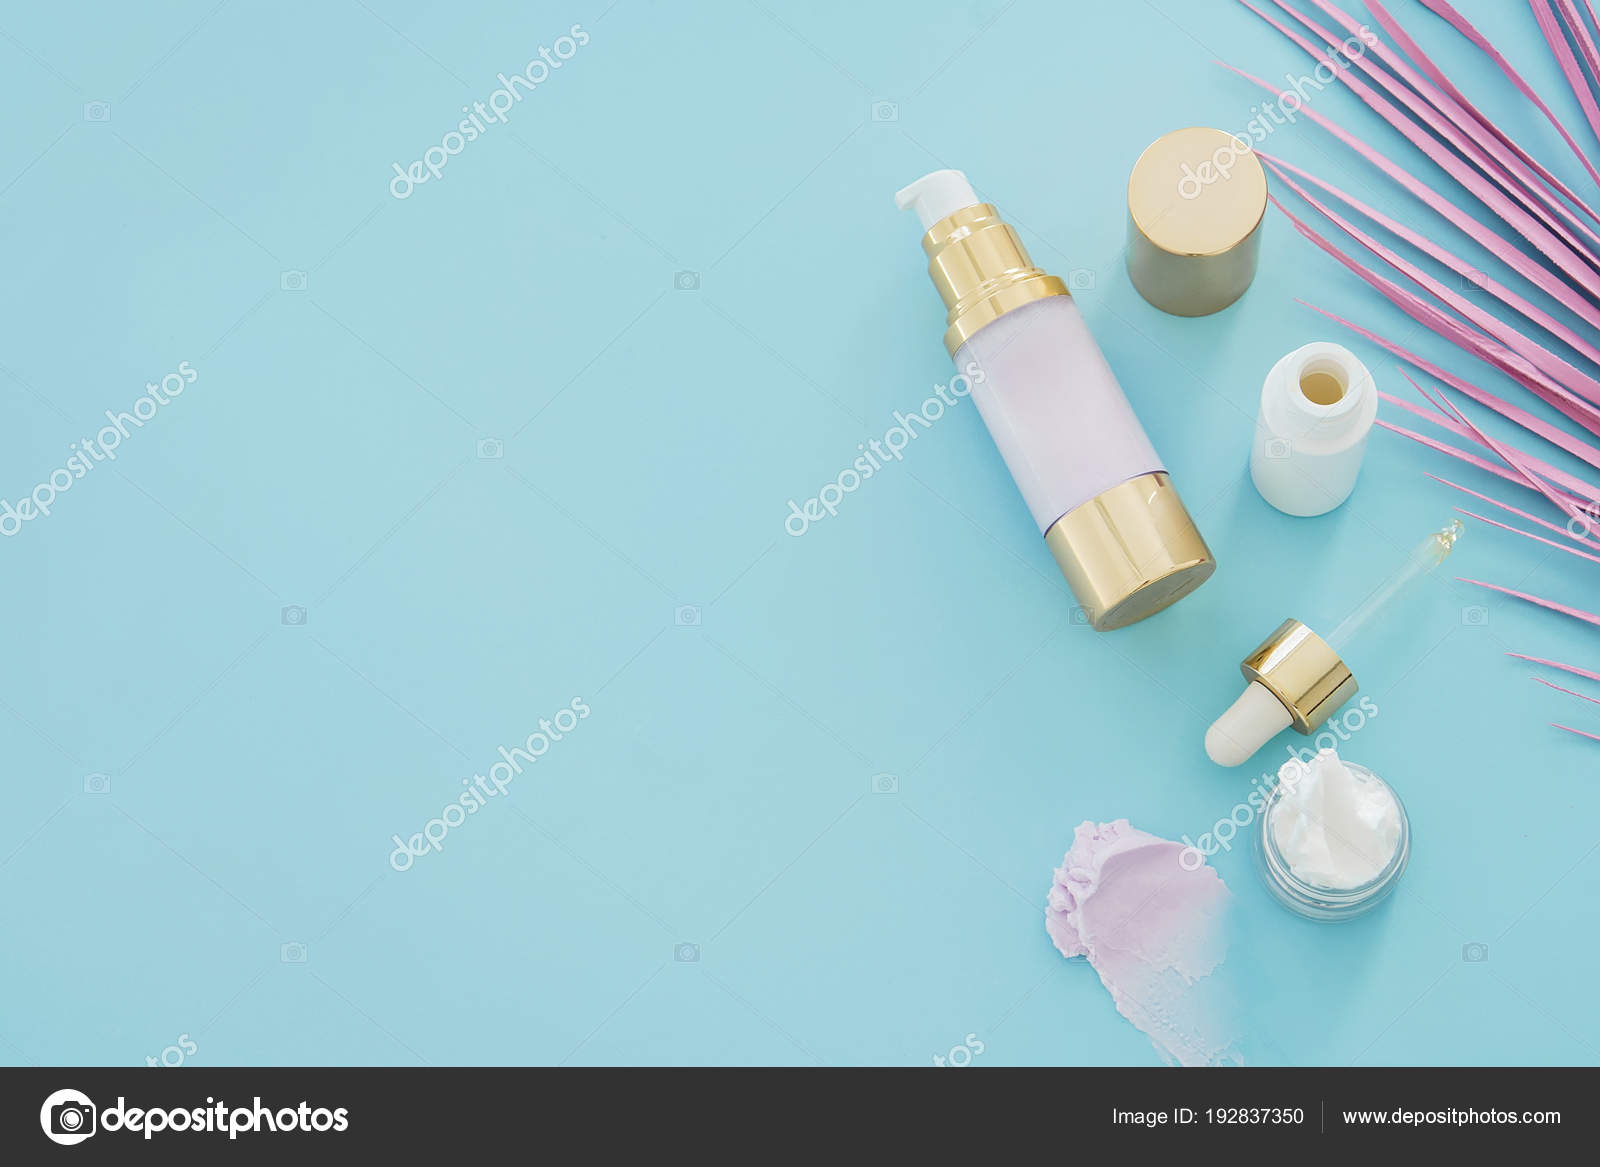 Natural Skincare Beauty Products Pink Palm Leaf Blue Background Stock Photo C Christina Pauchi 192837350